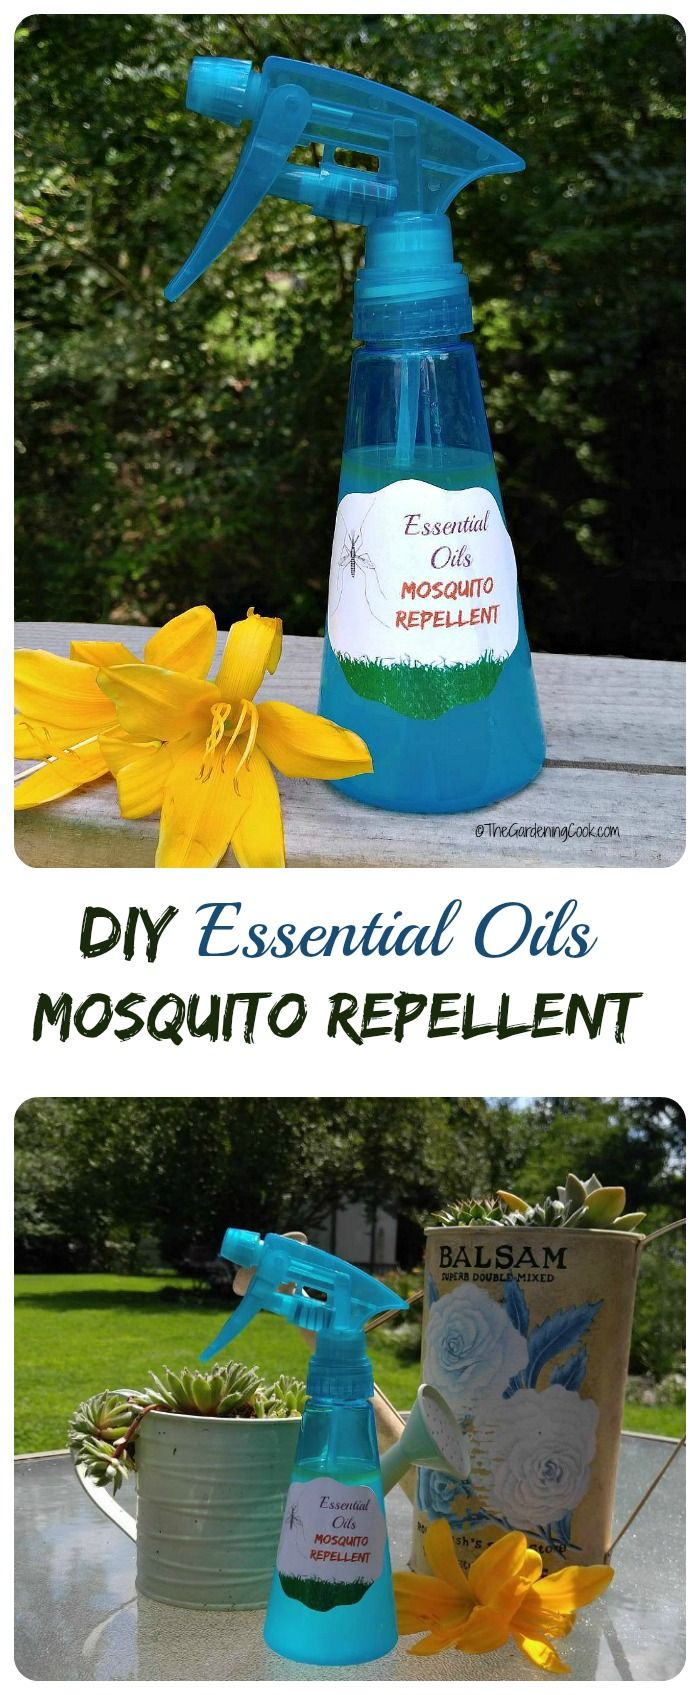 Essential Oil Mosquito Repellent Spray DIY Project Diy